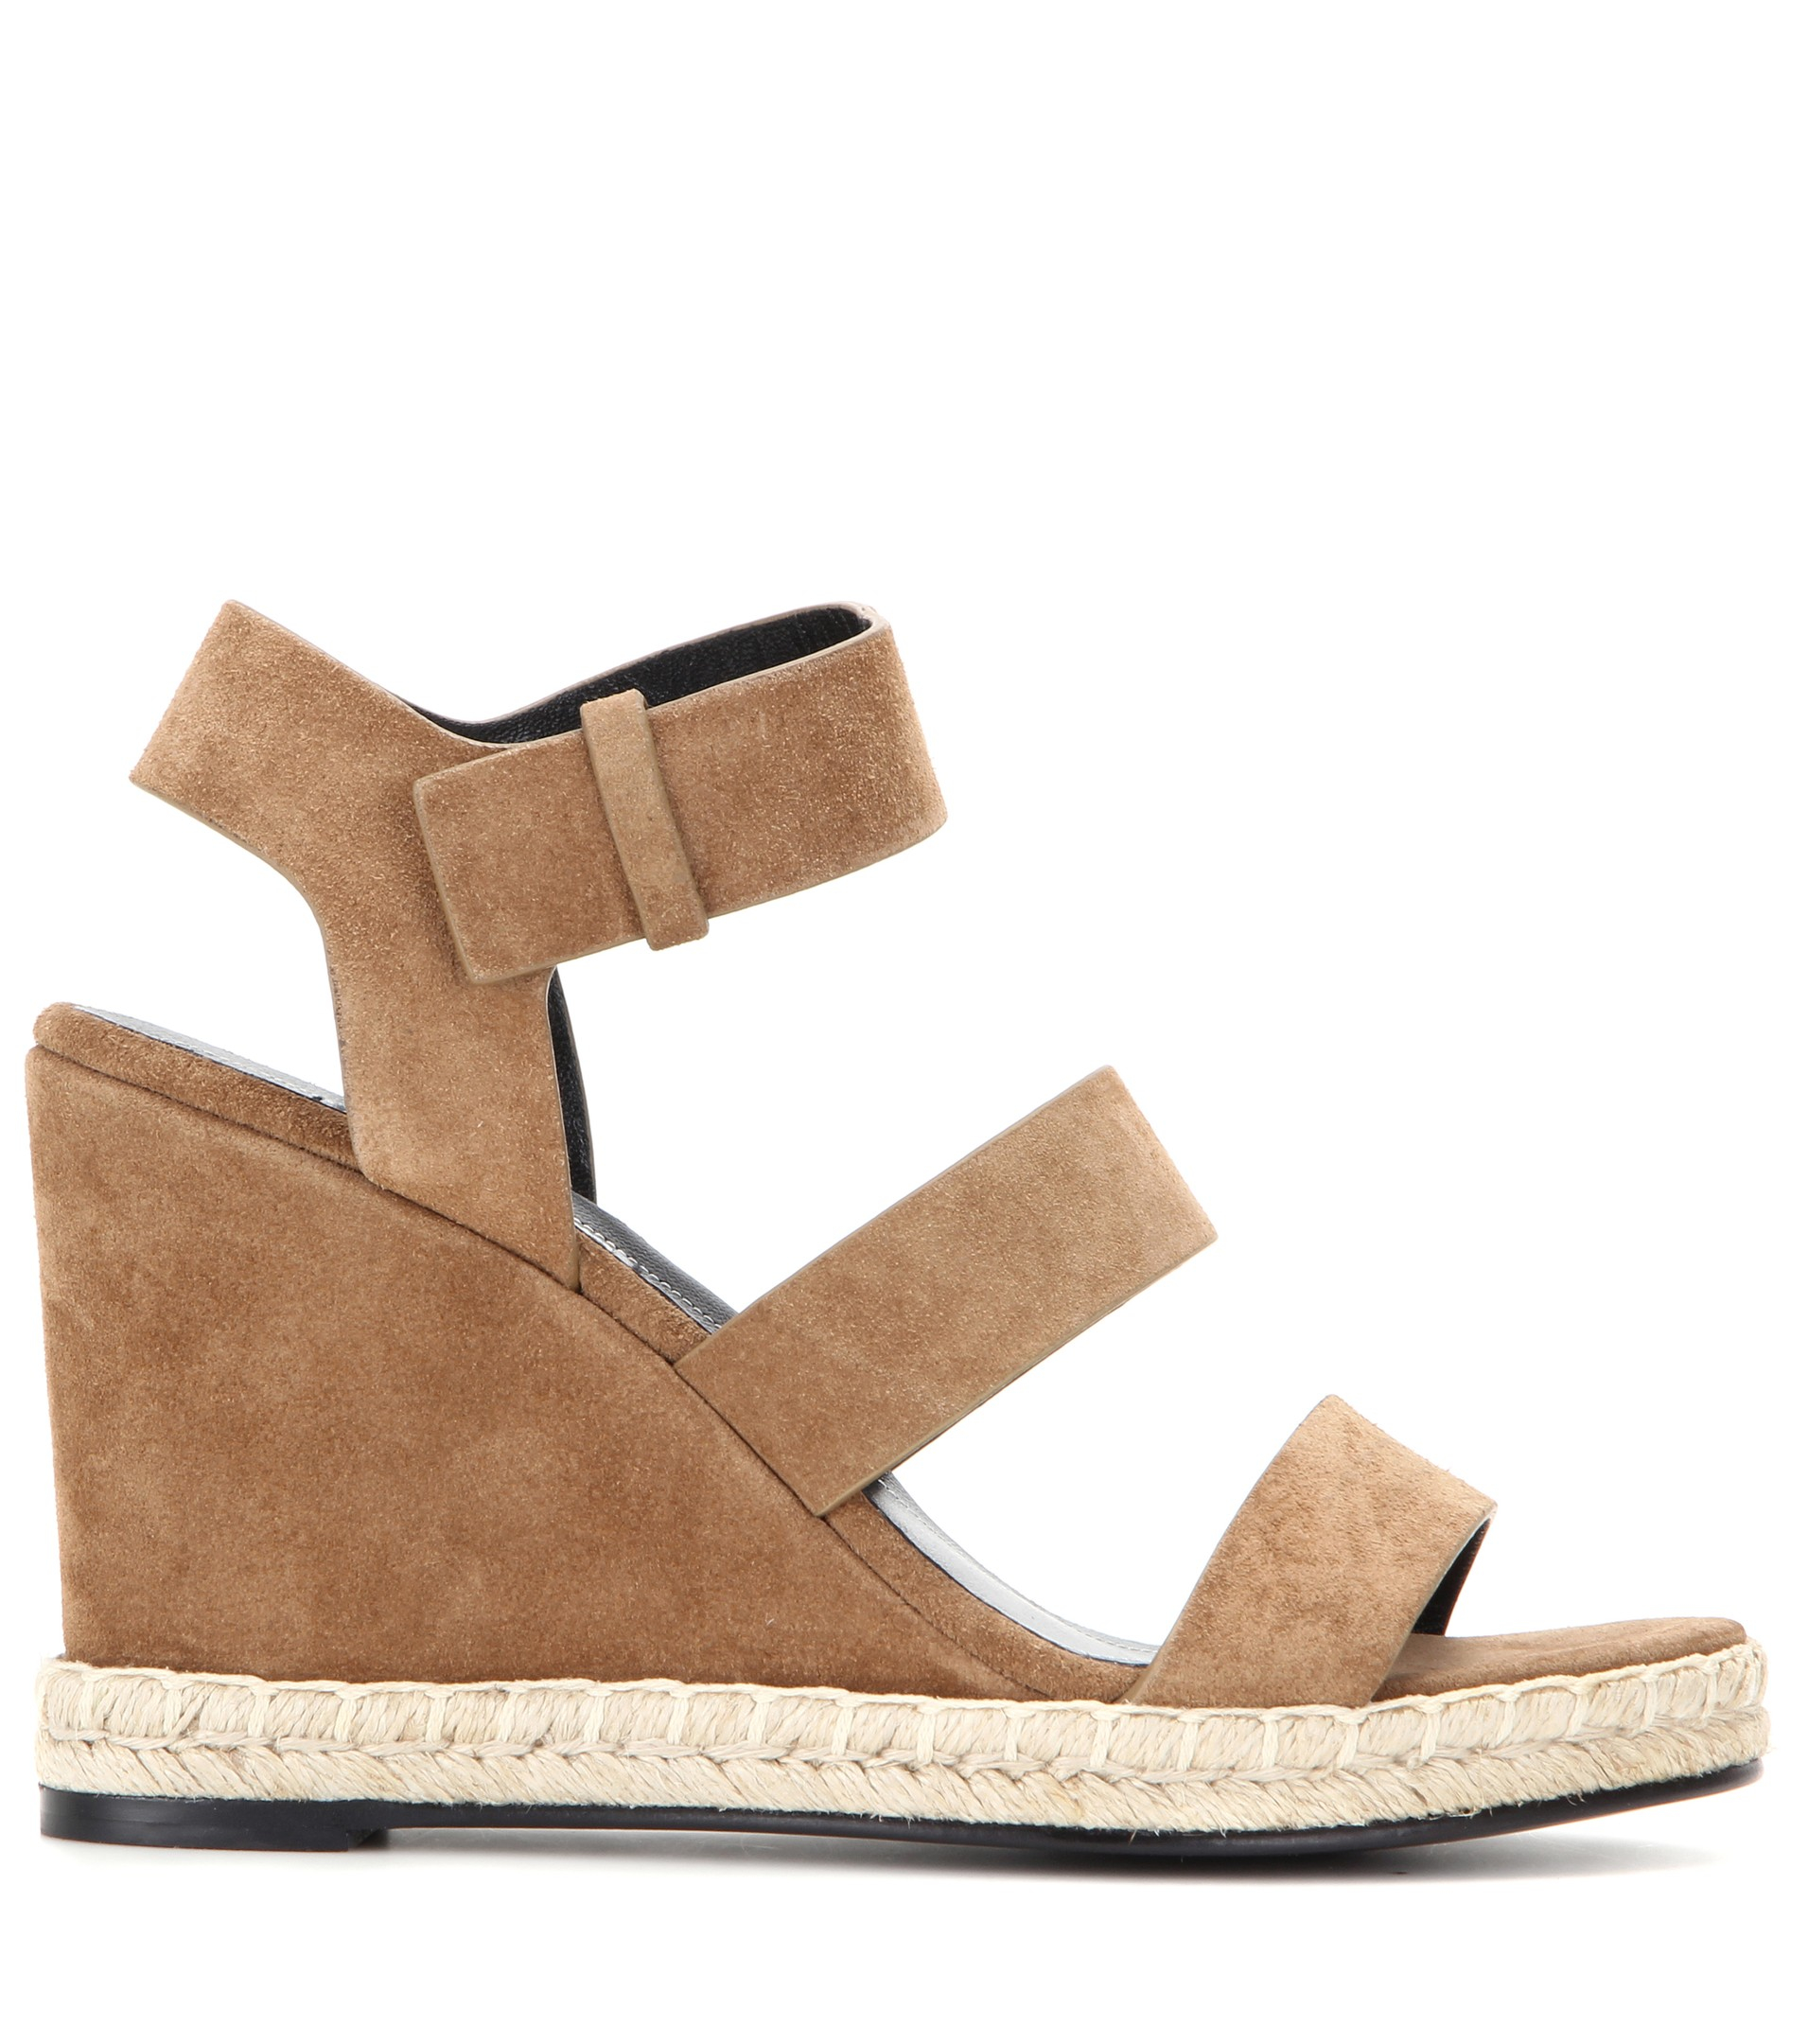 6ed6bb1cd25f Lyst - Balenciaga Suede Wedge Sandals in Brown